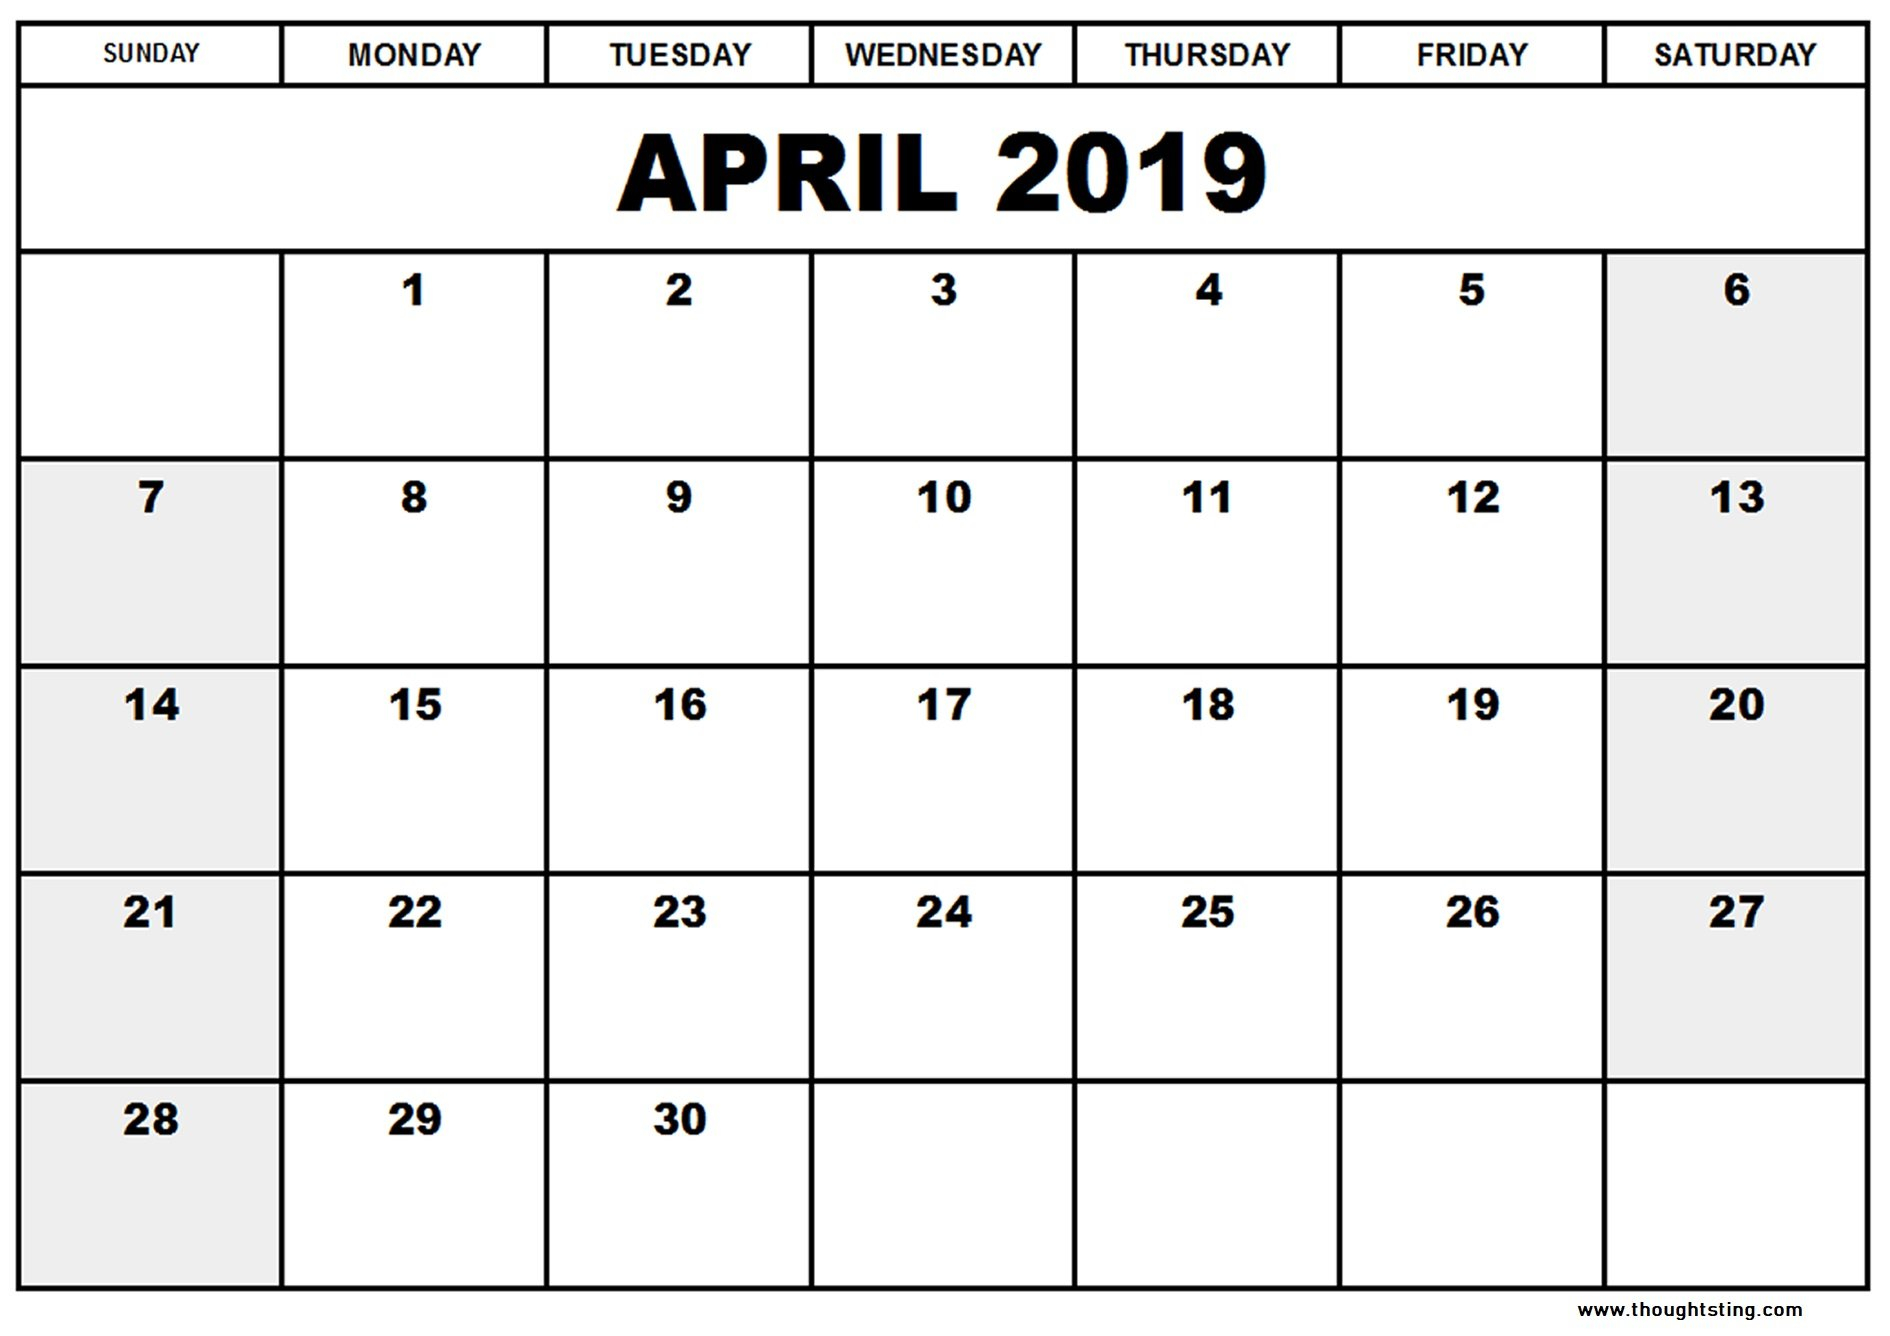 April 2019 Calendar Template Word, Excel, Pdf - Free Printable Calendar 2019 Template Word